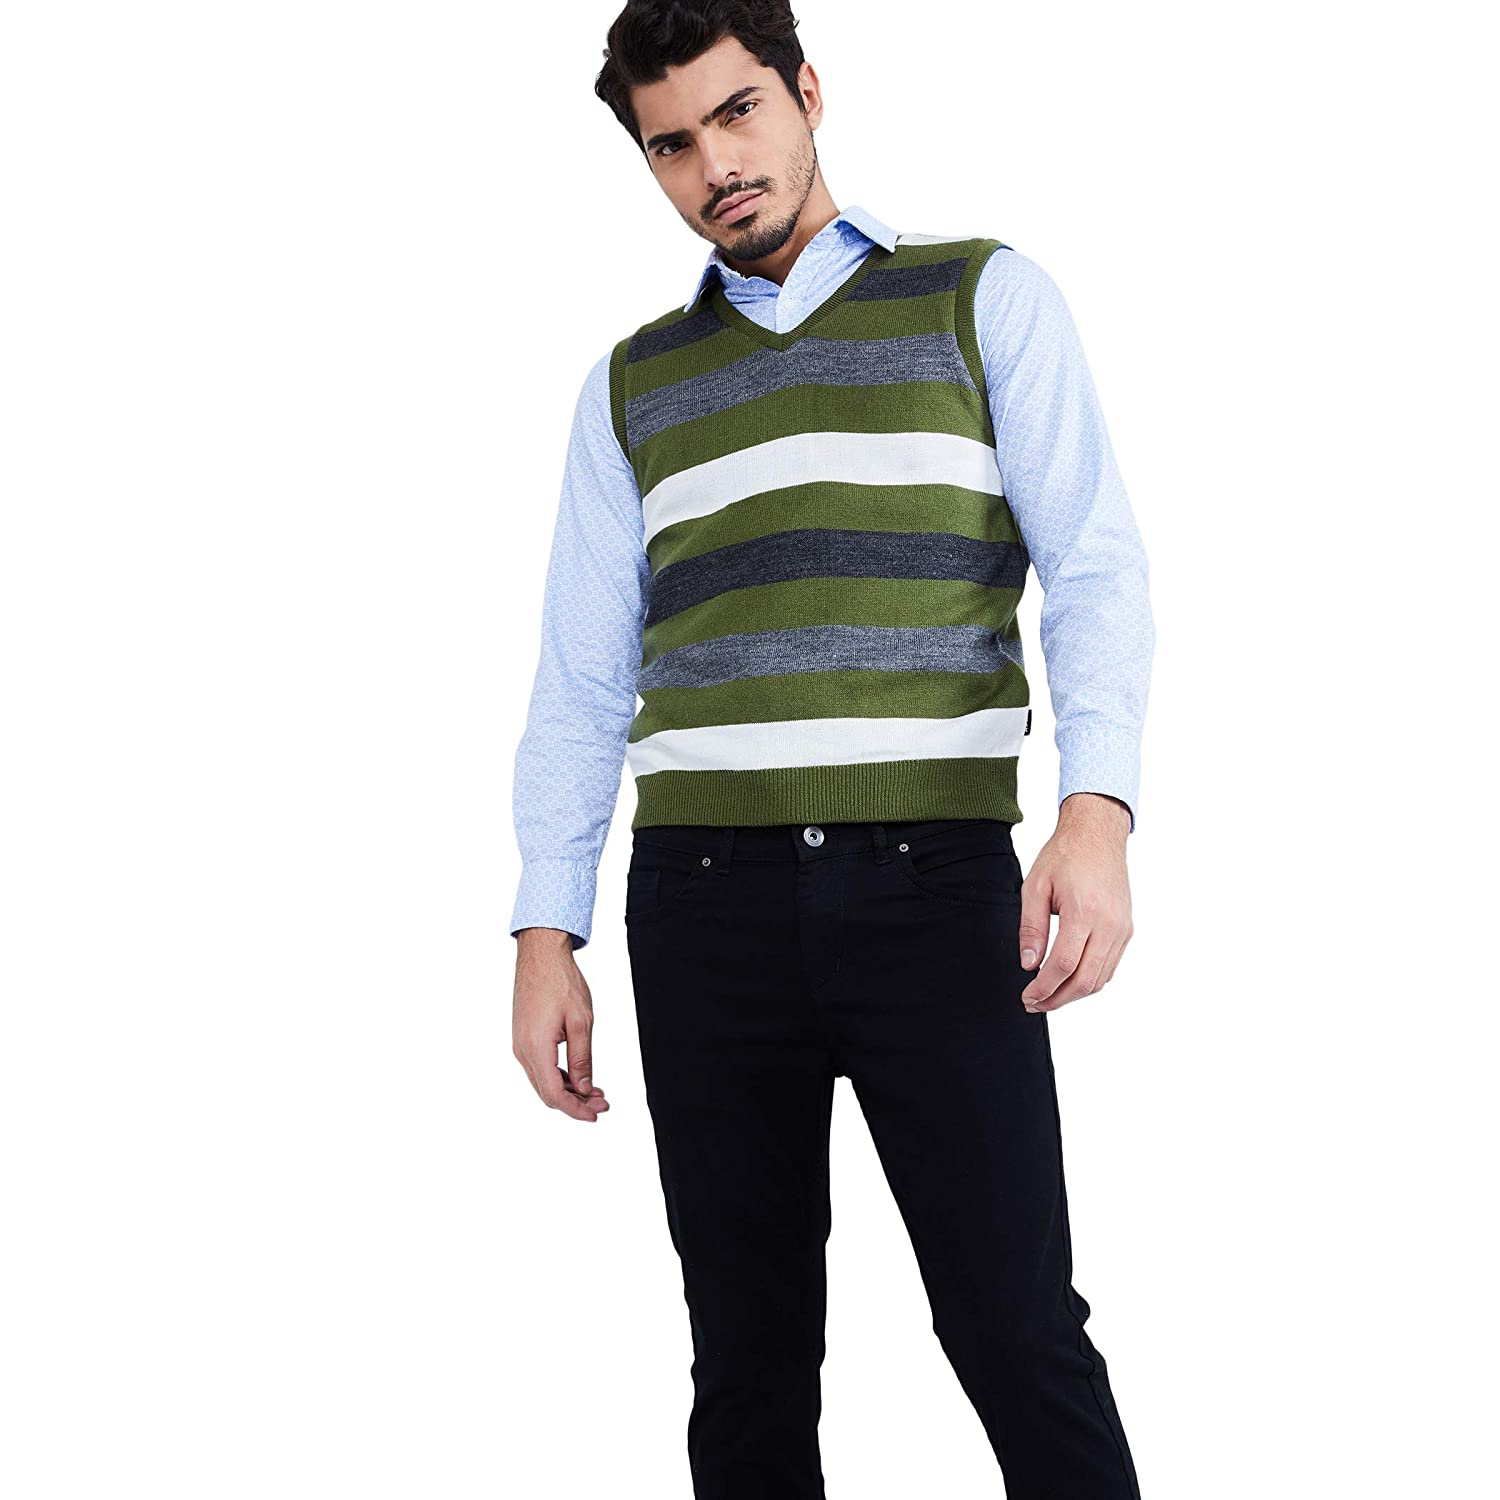 For 347/-(61% Off) Men's Sweaters & Jackets at Flat 60% Off from Rs.357 at Amazon India